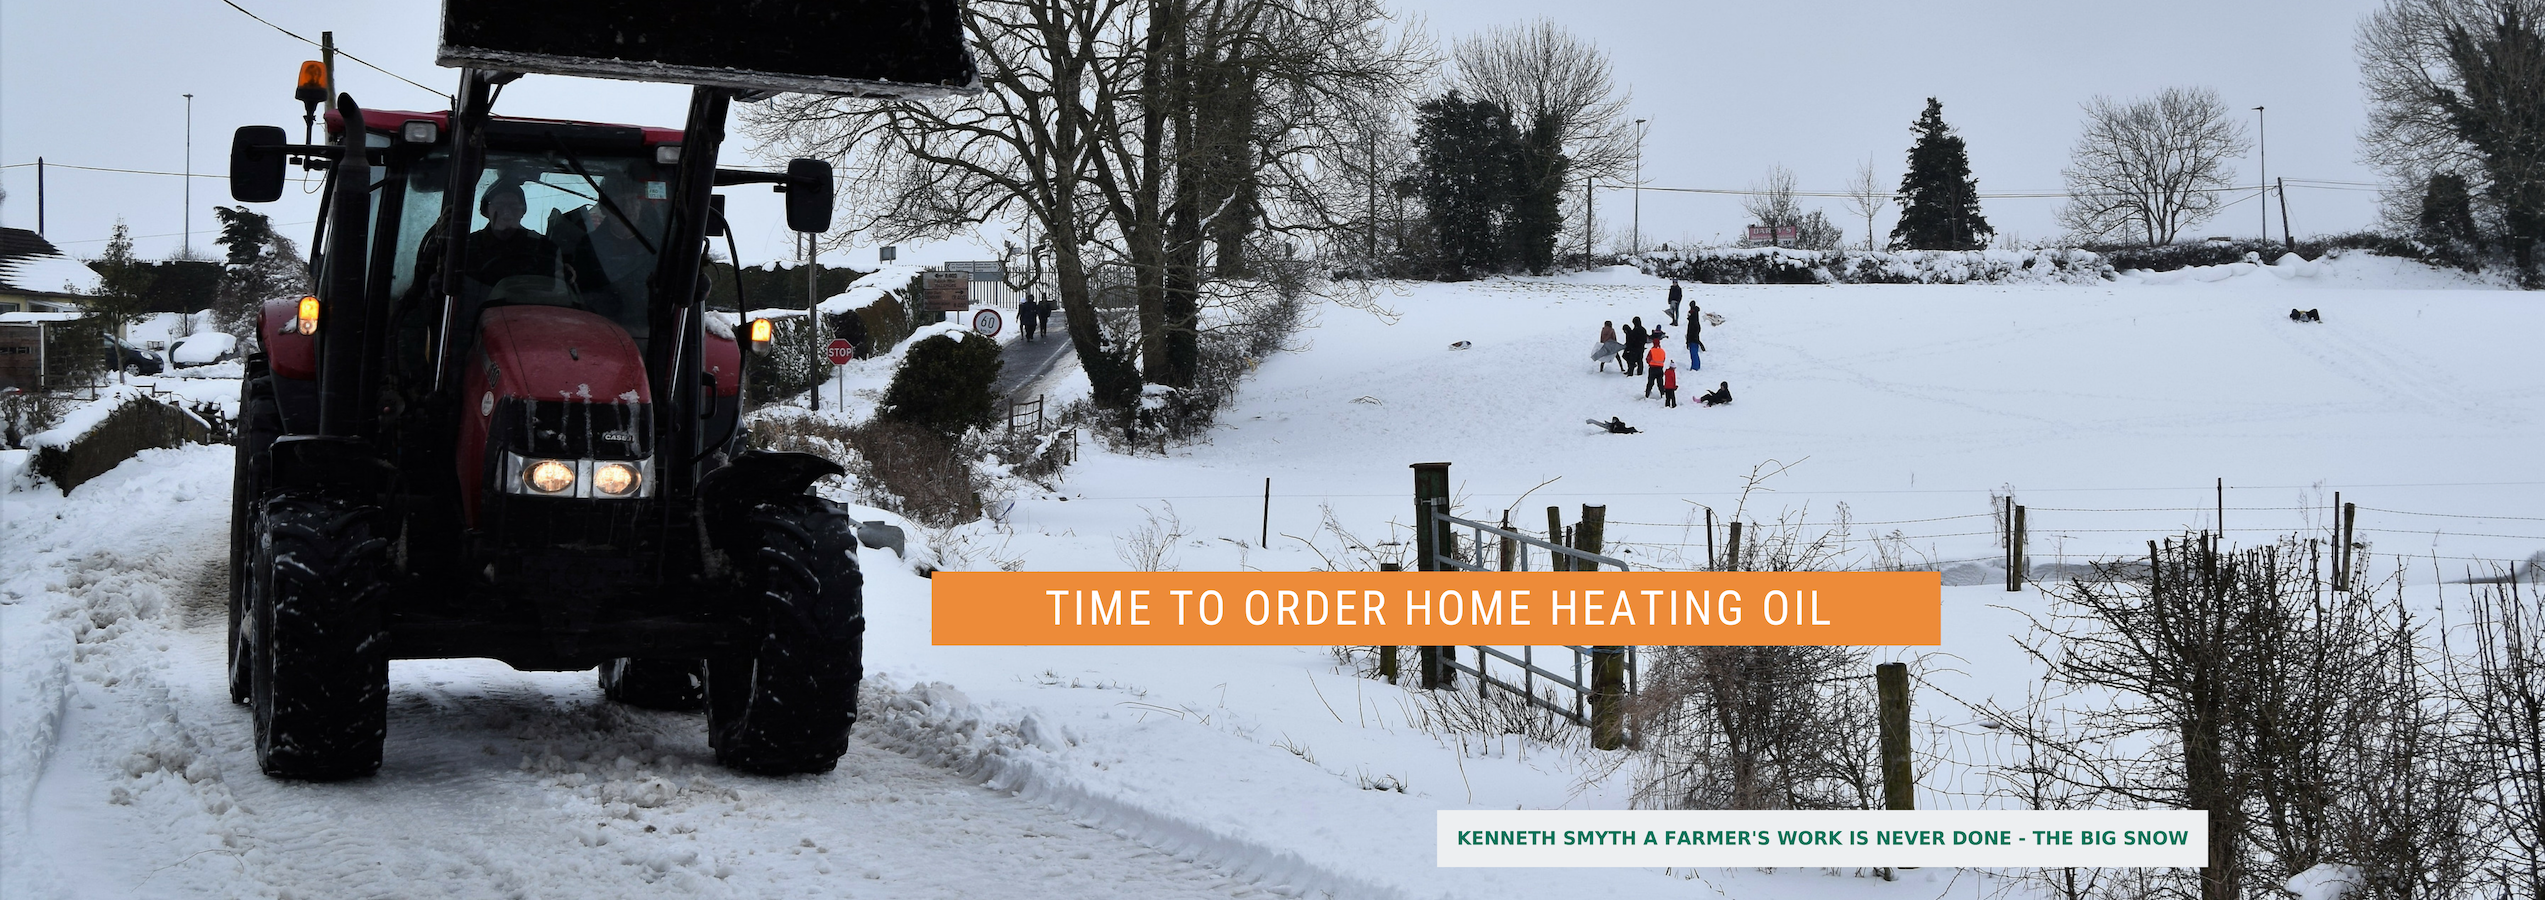 Order Home Heating Oil from Lambes Oil on a snowy day